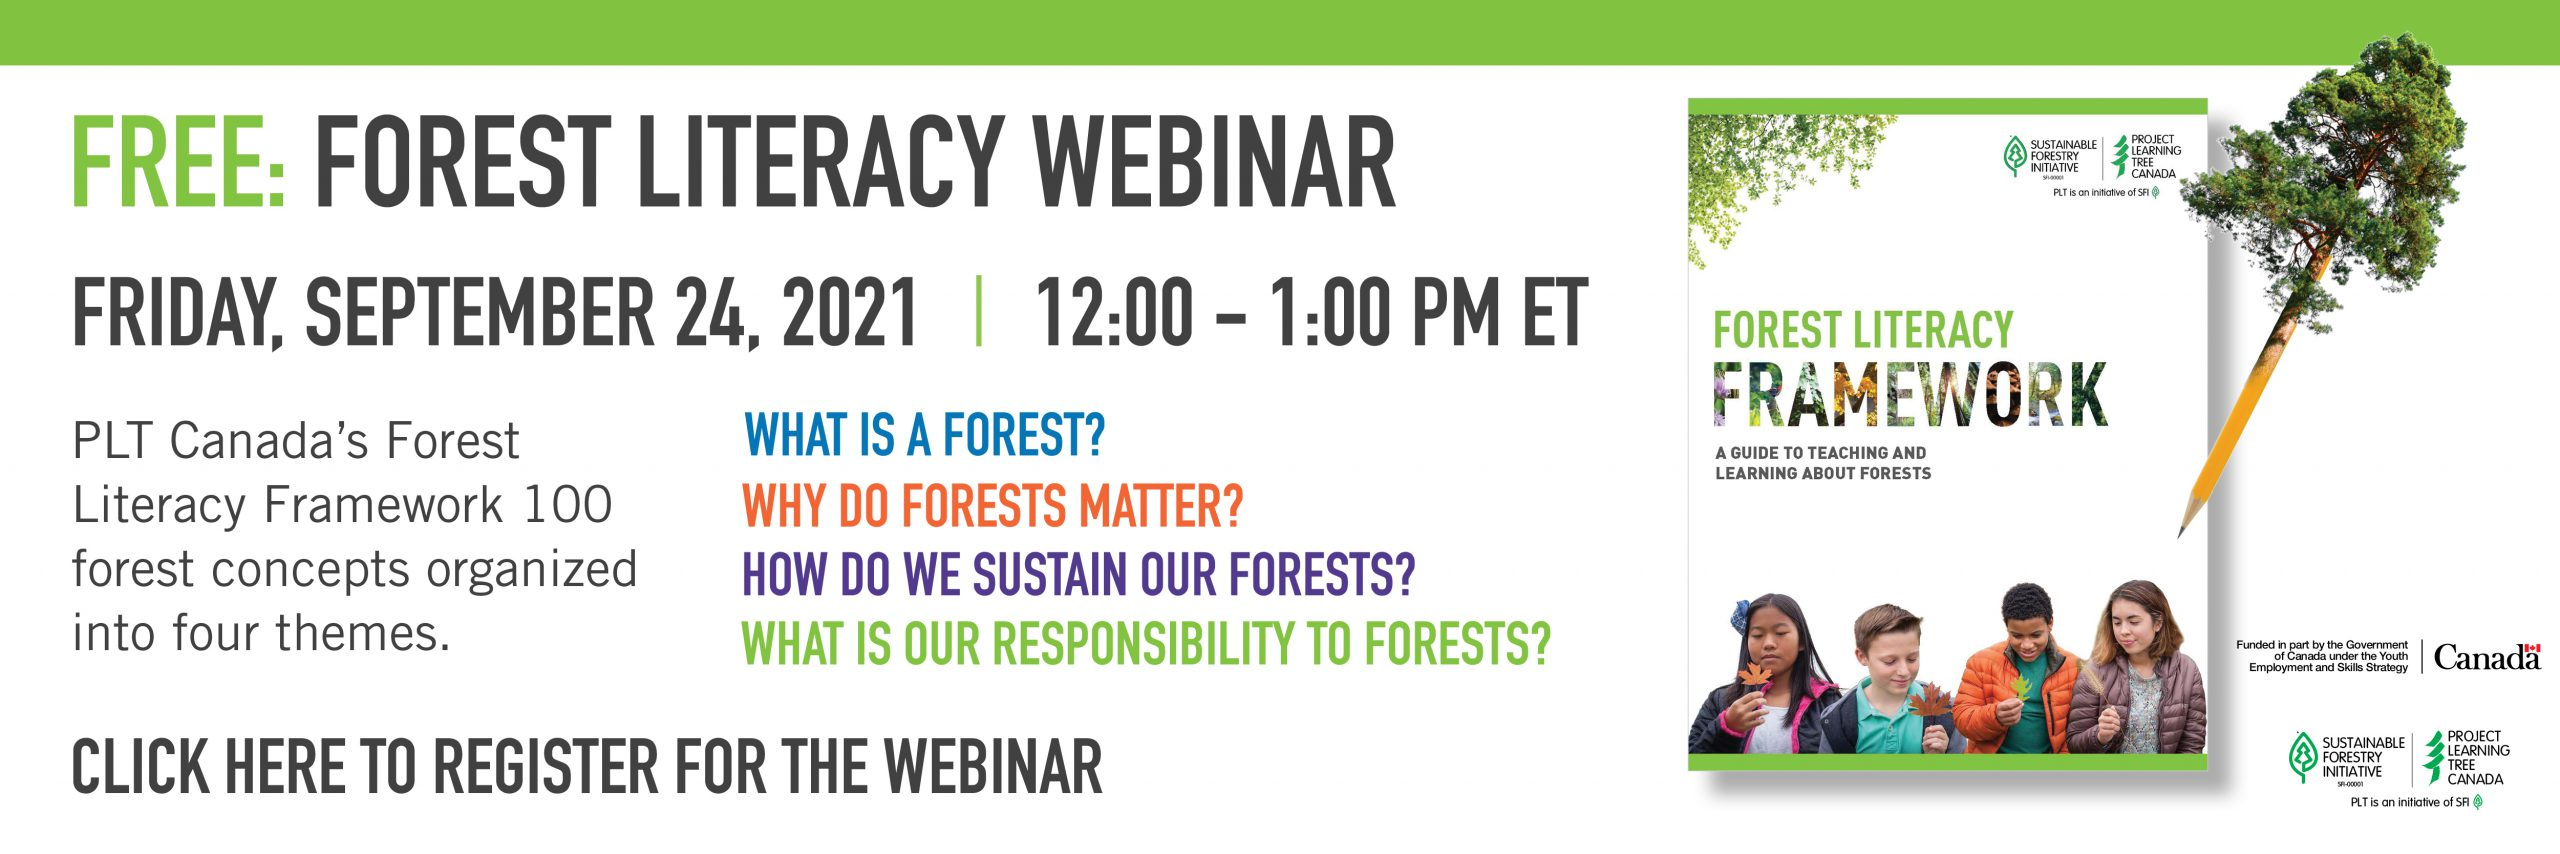 Forest literacy webinar banner. Friday, Sept. 24, 2021 from 12-1pm EST. Click to register!